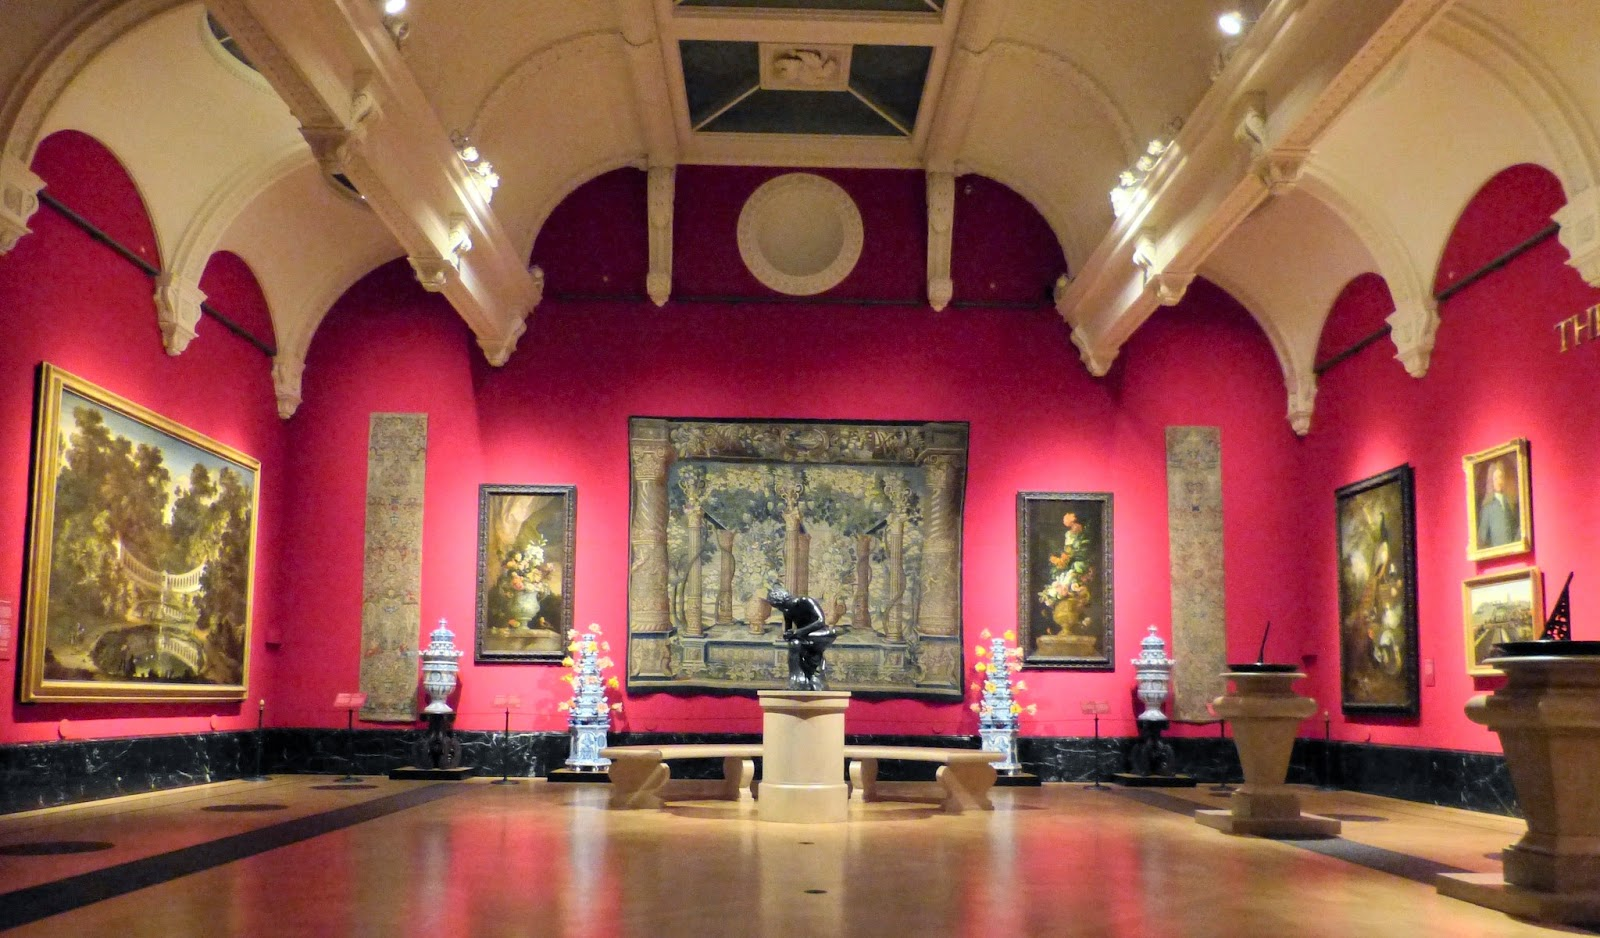 The Baroque Garden exhibition room